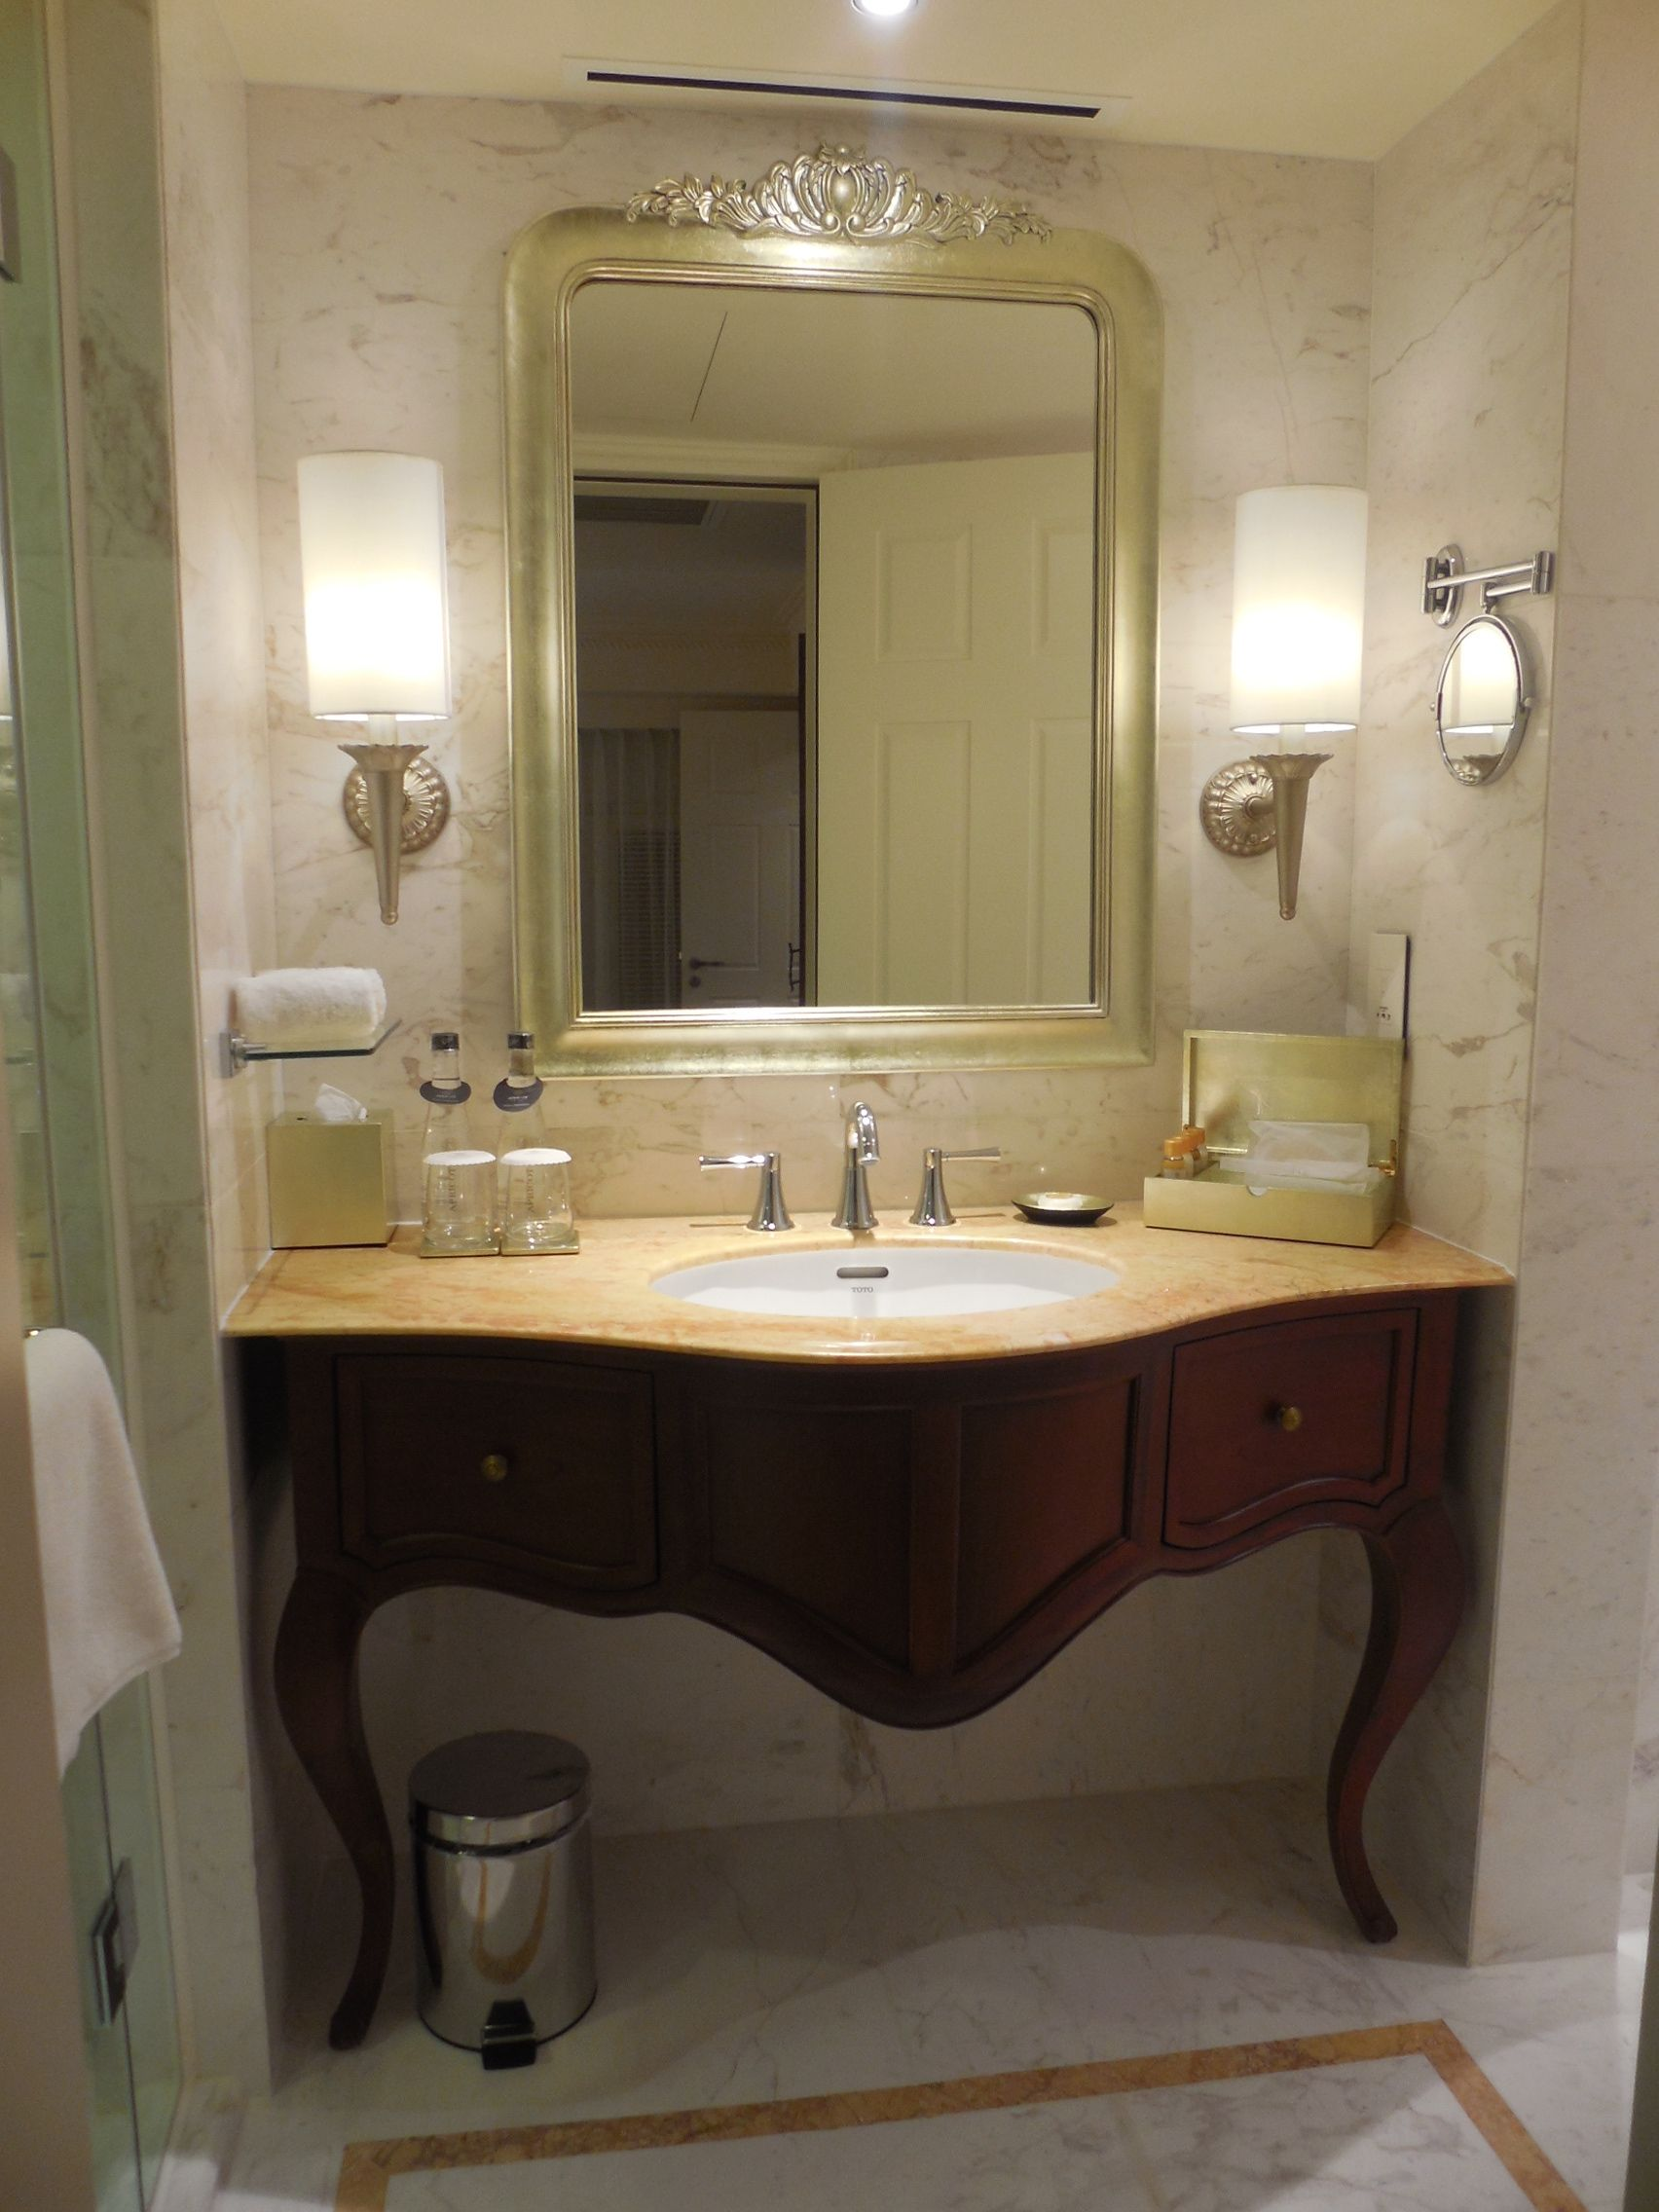 Be different but stylish with an art nouveau bathroom ...